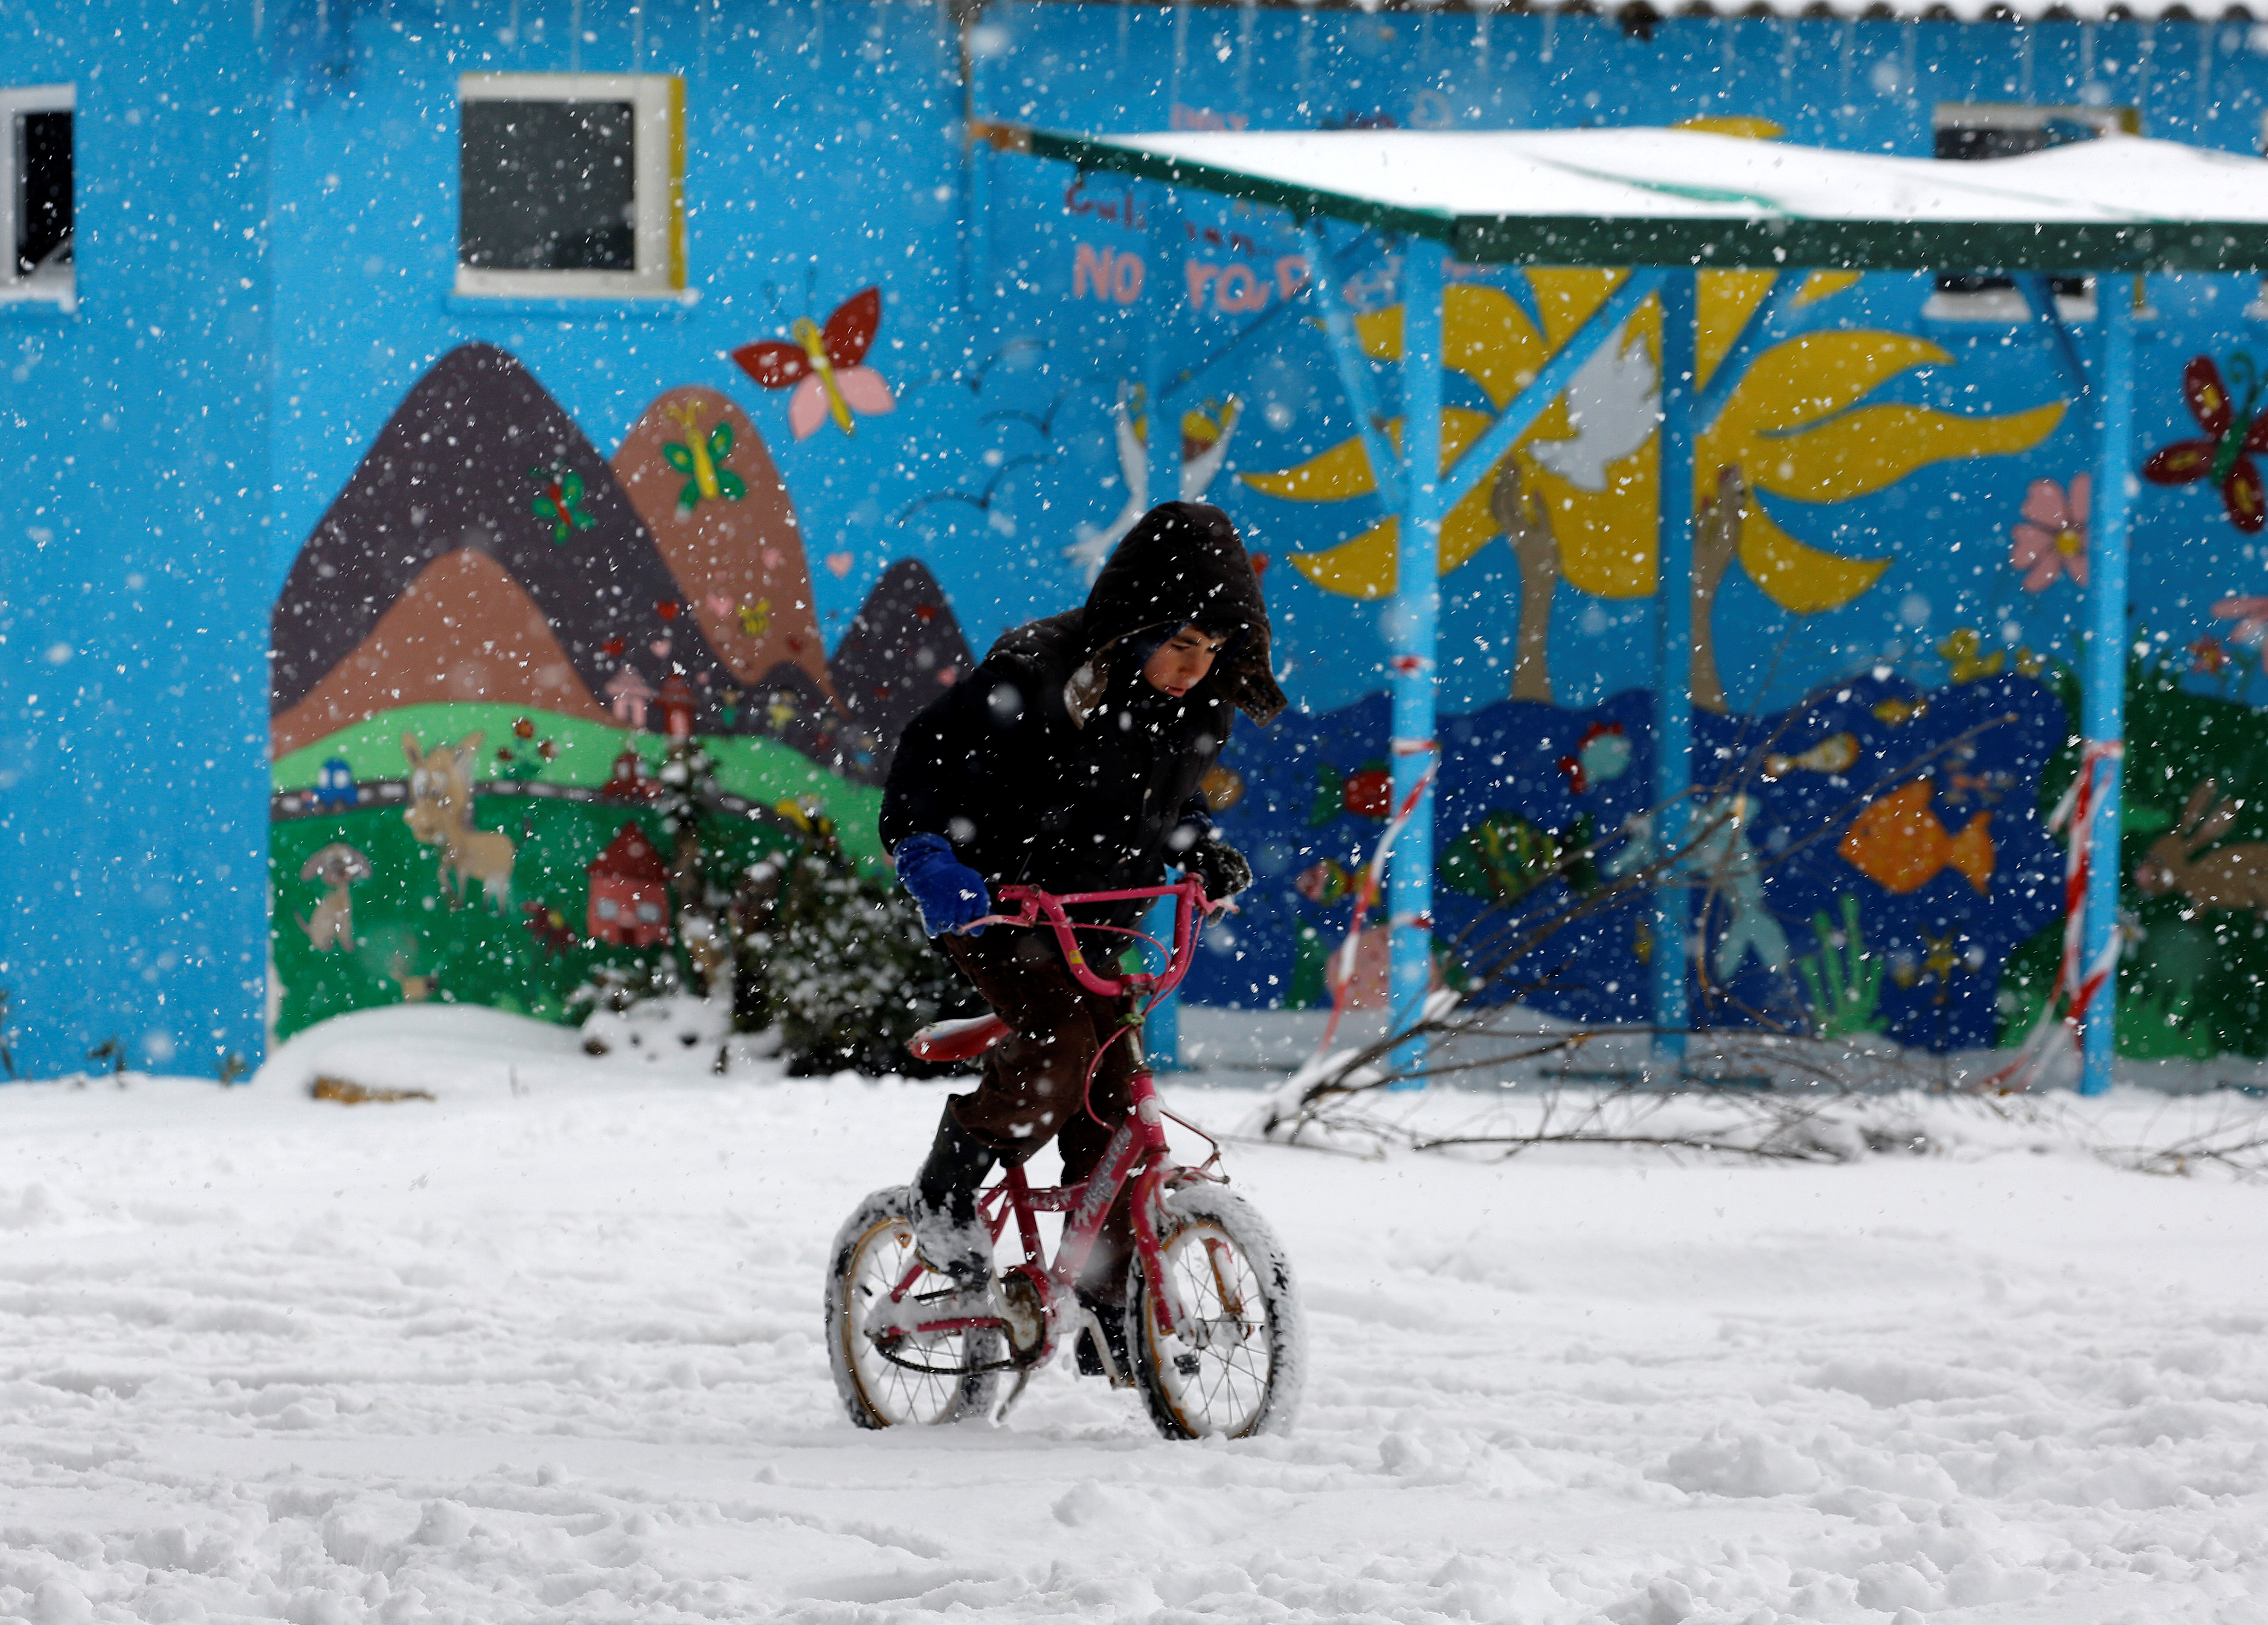 refugee boy rides bike through snow